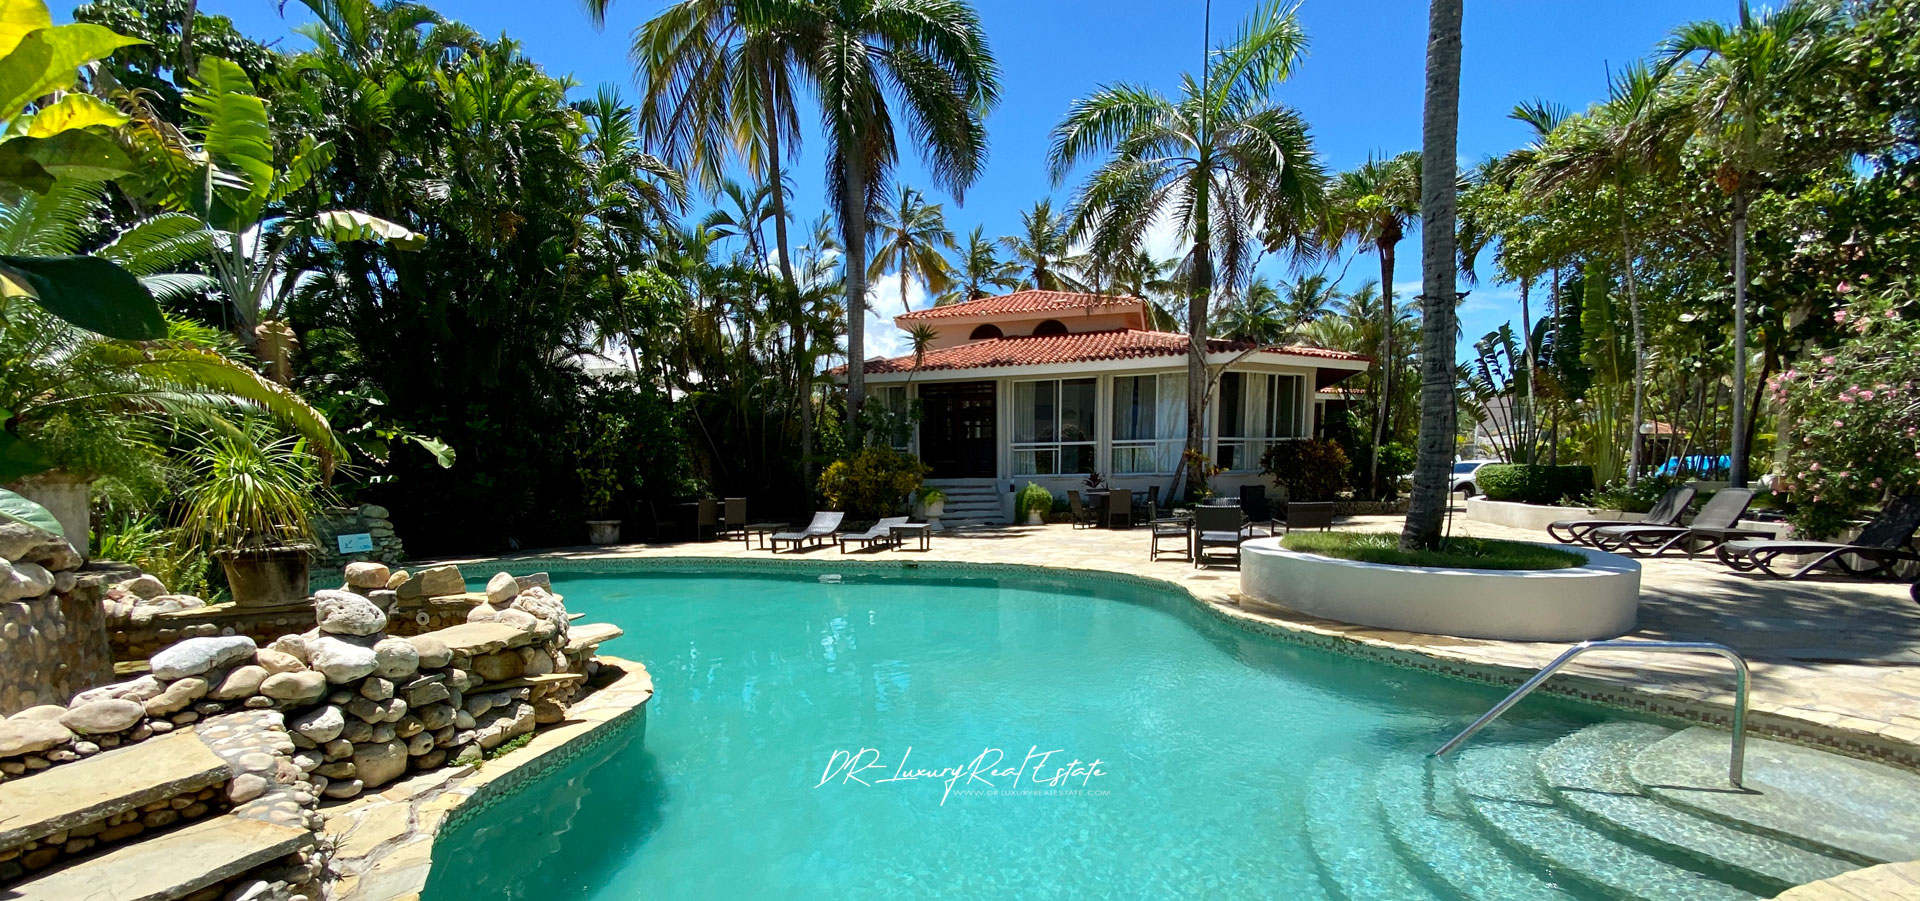 #0 A great income producing waterfront villa with great rental history!